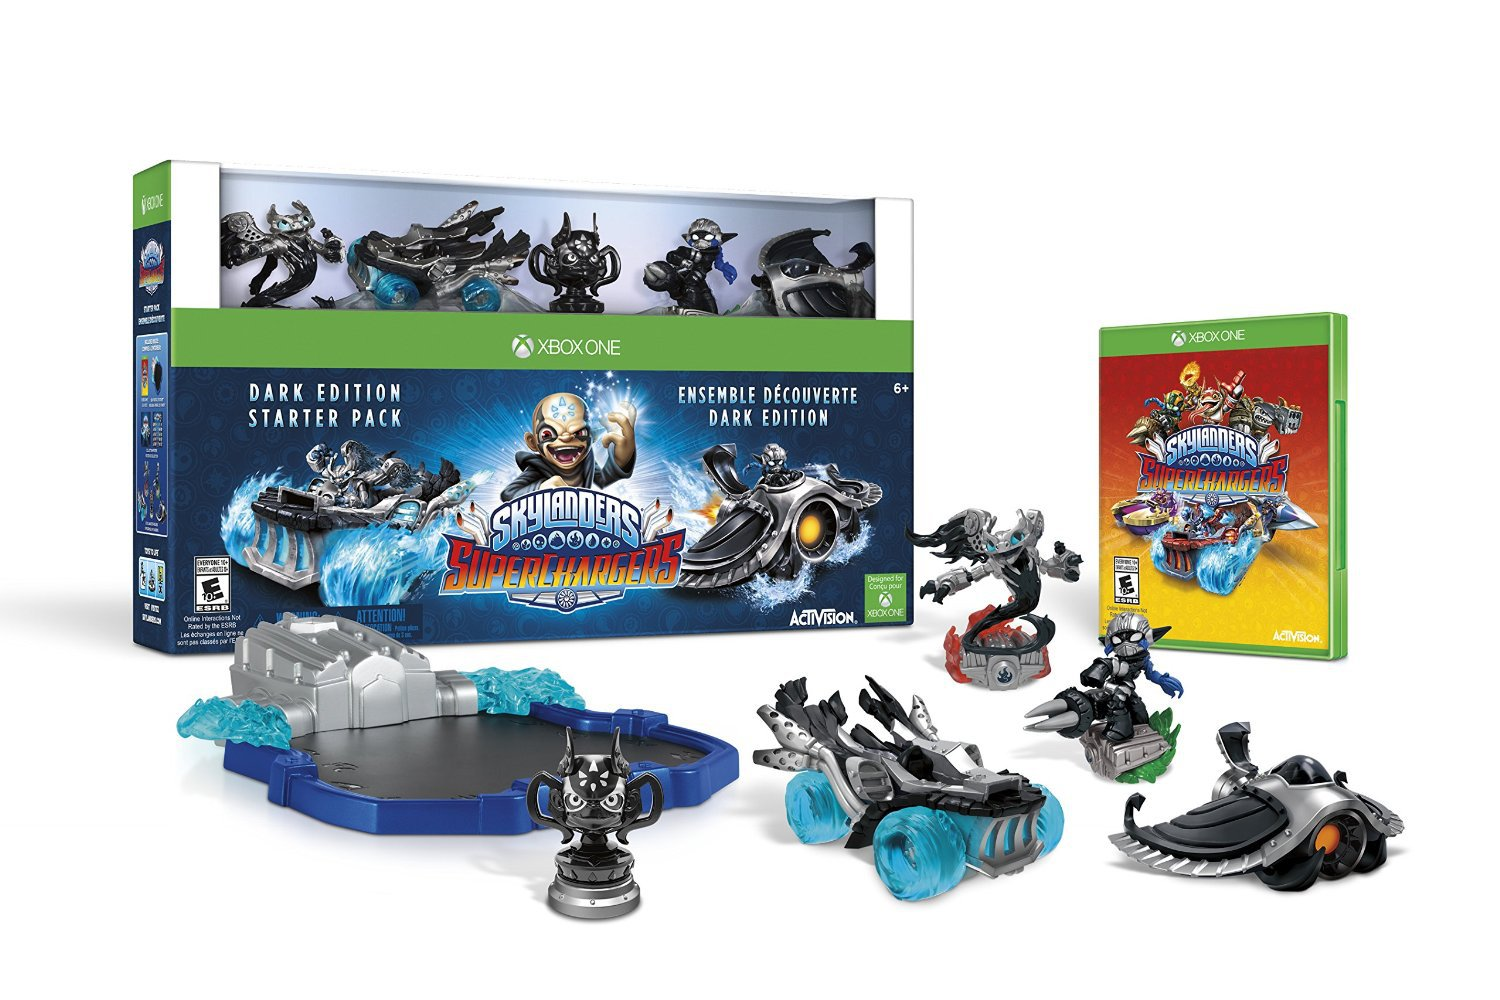 Skylanders SuperChargers Dark Edition Starter Pack Xbox One Physical Game Disc US